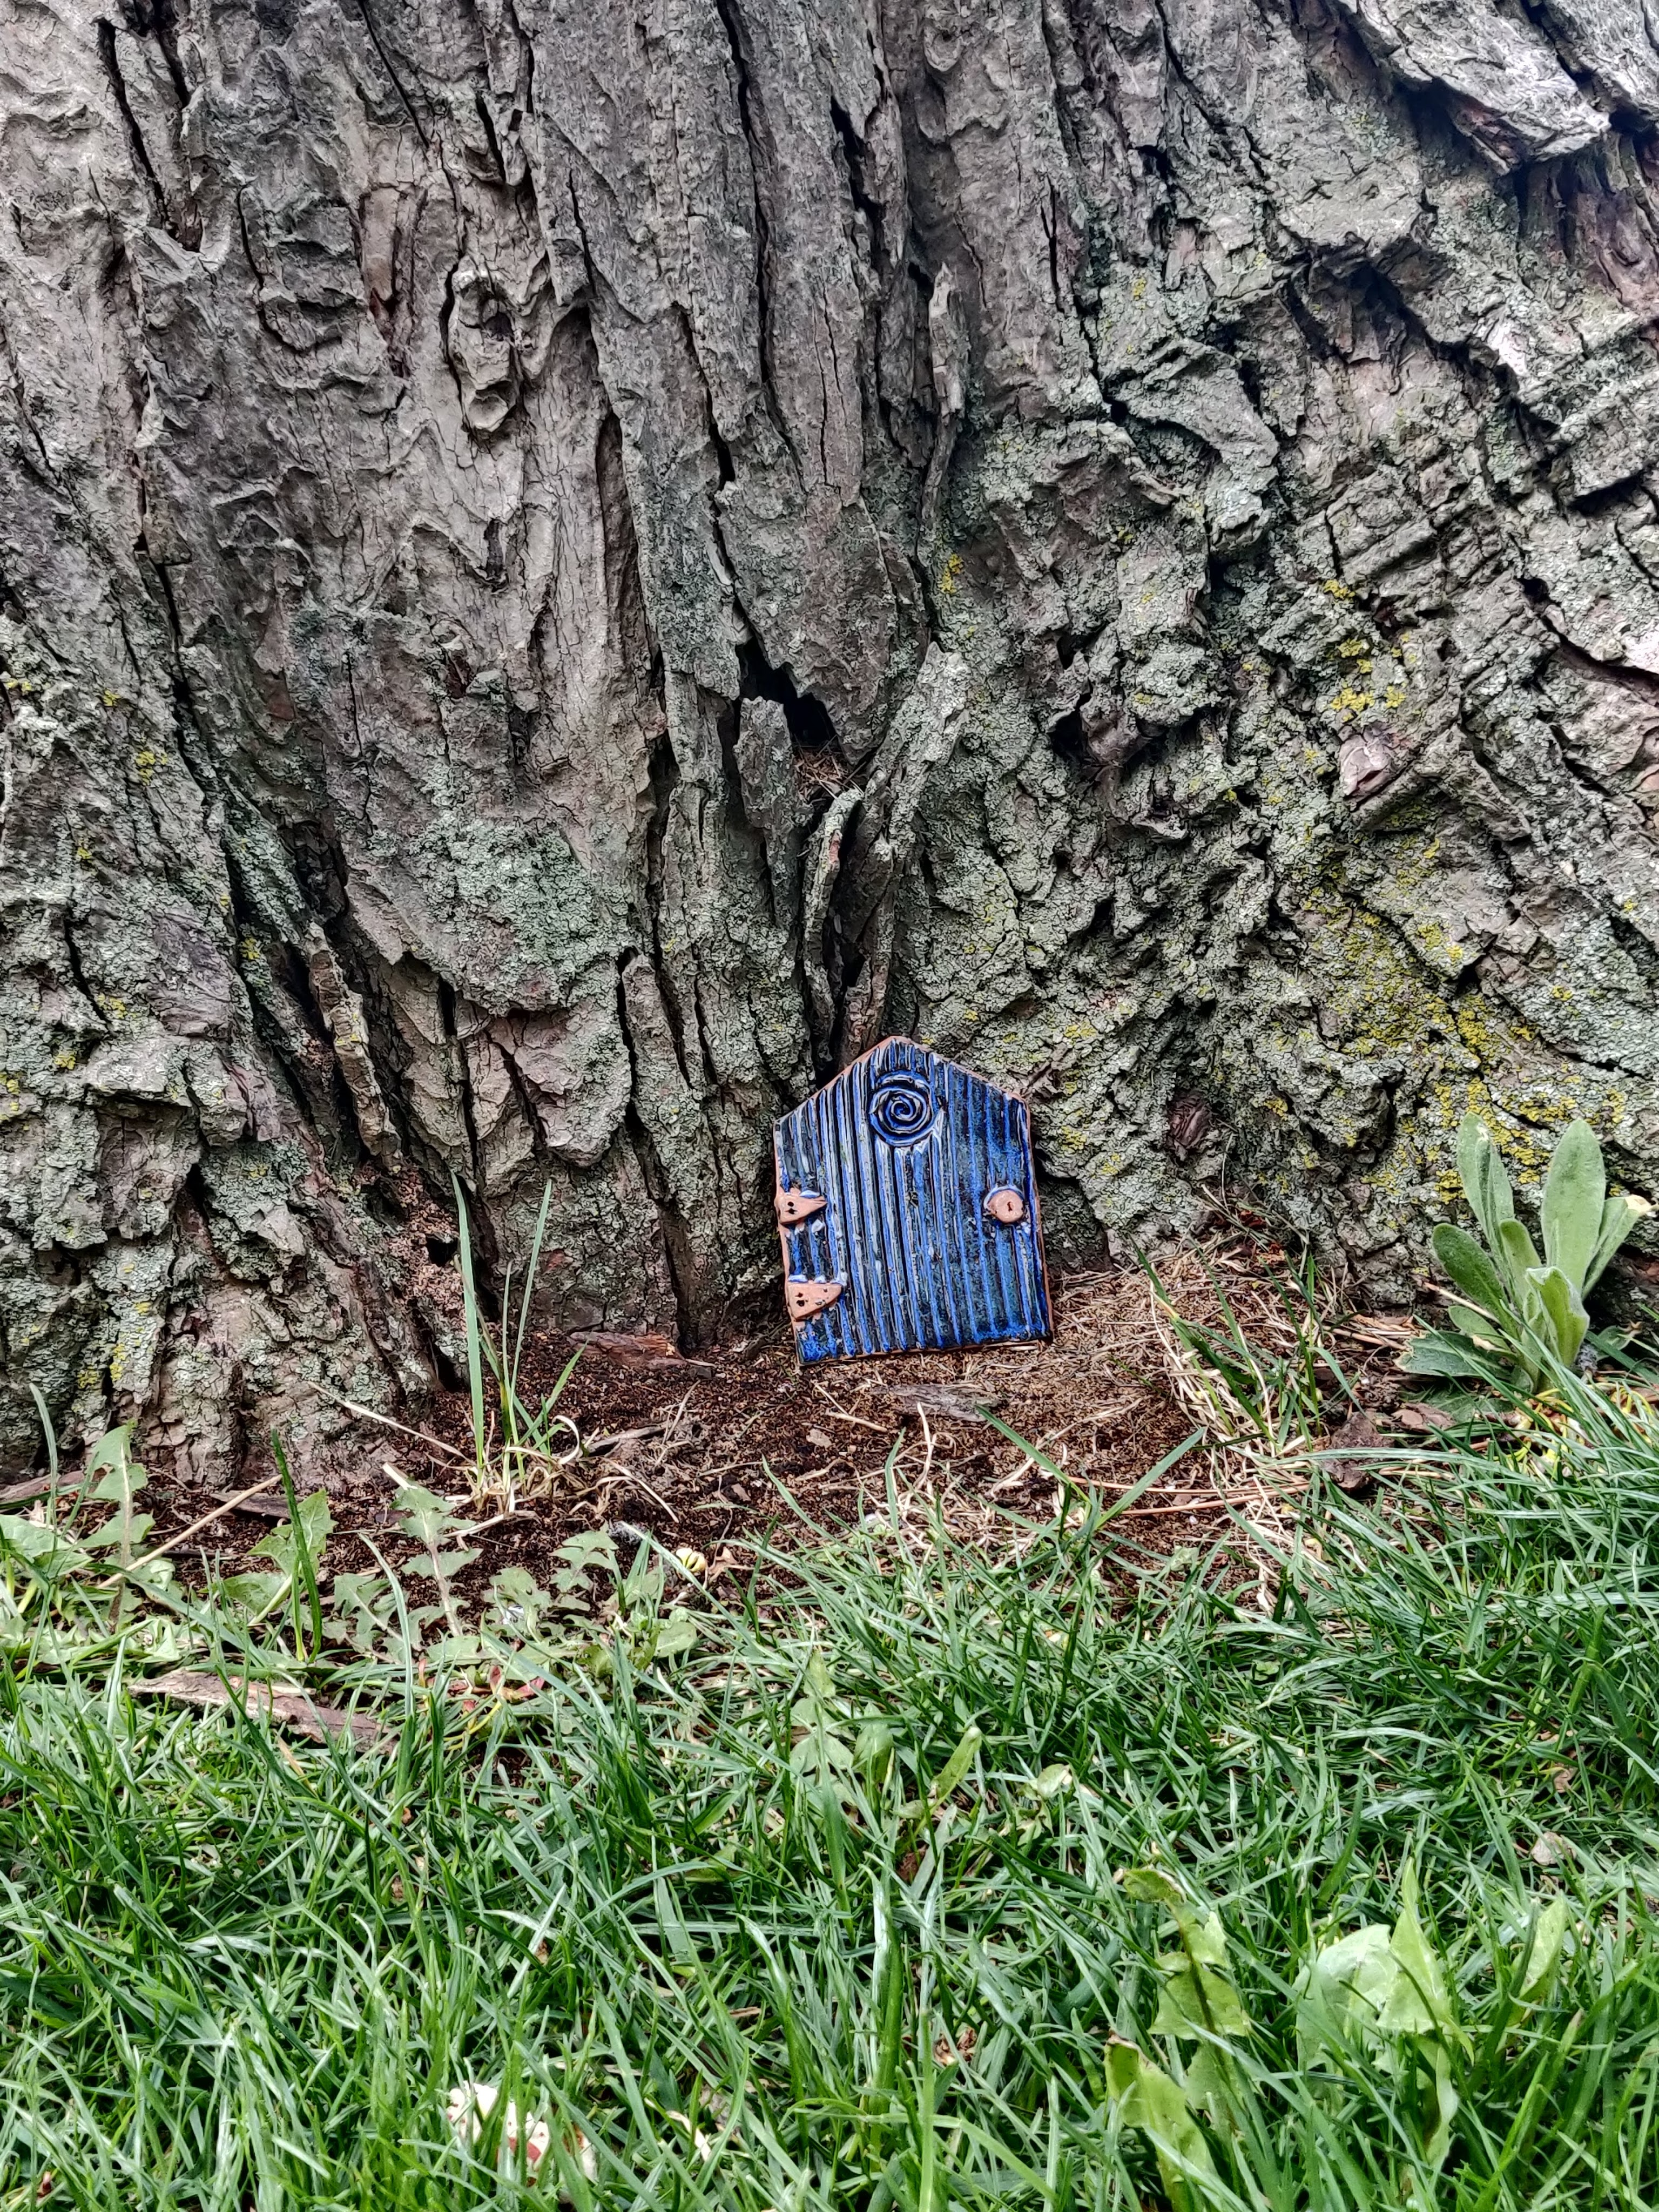 Tiny blue ceramic door resting against the trunk of a maple tree.